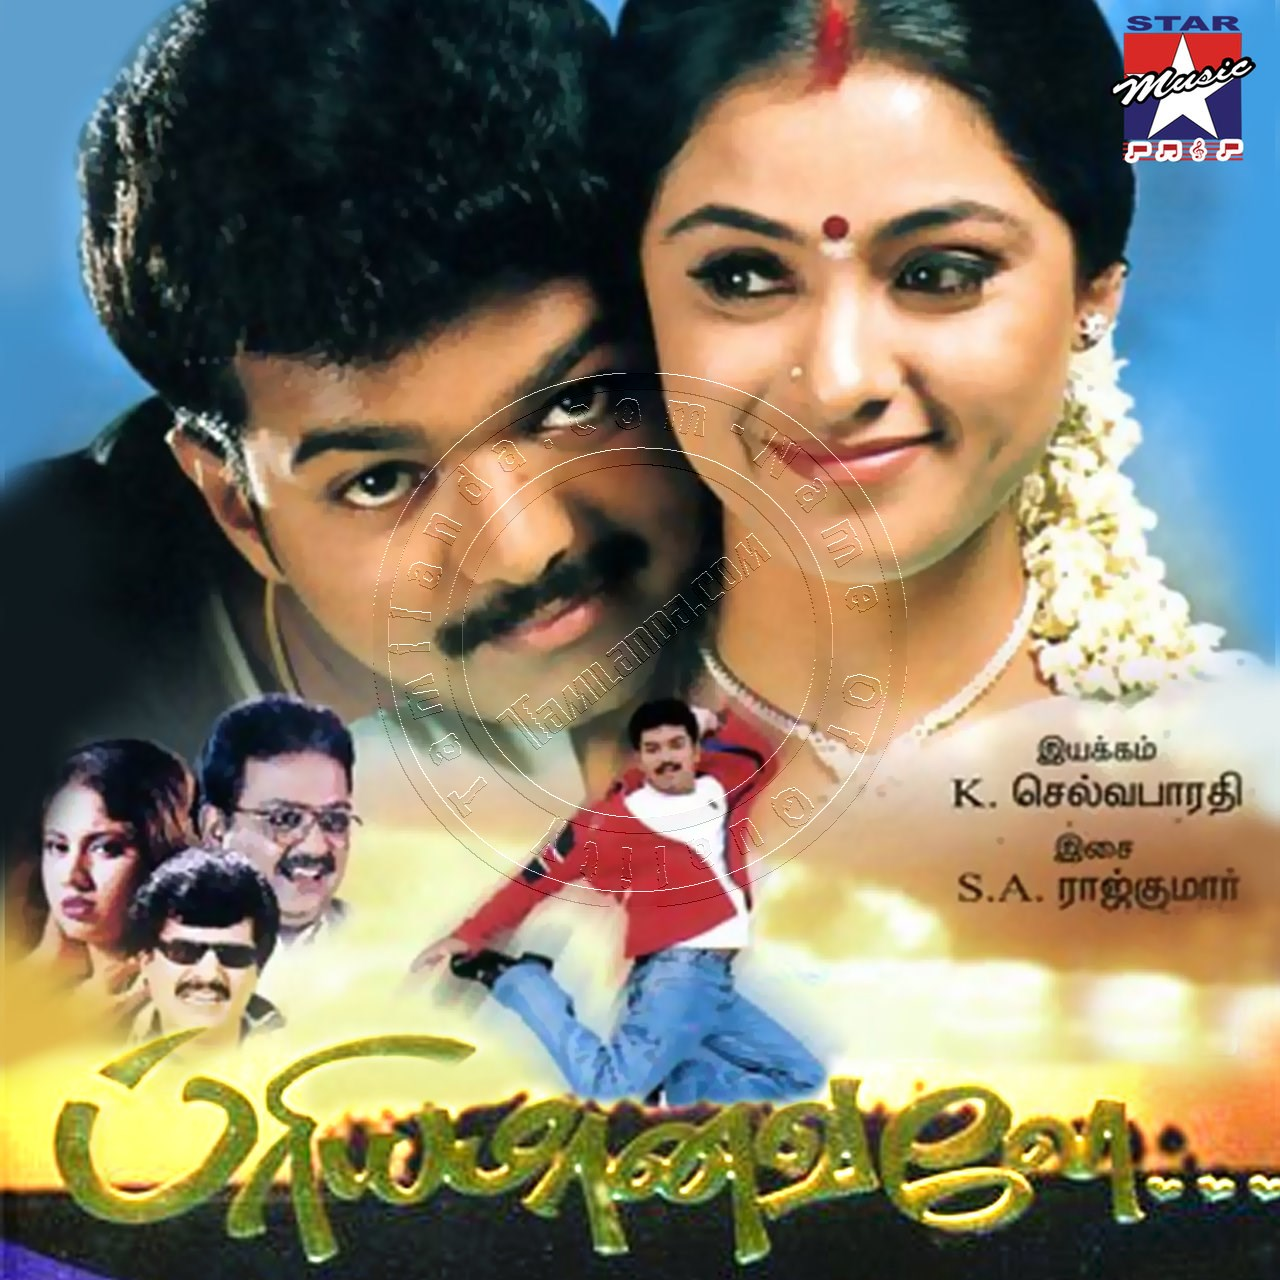 Priyamanavale FLAC/WAV Songs [Star Music]